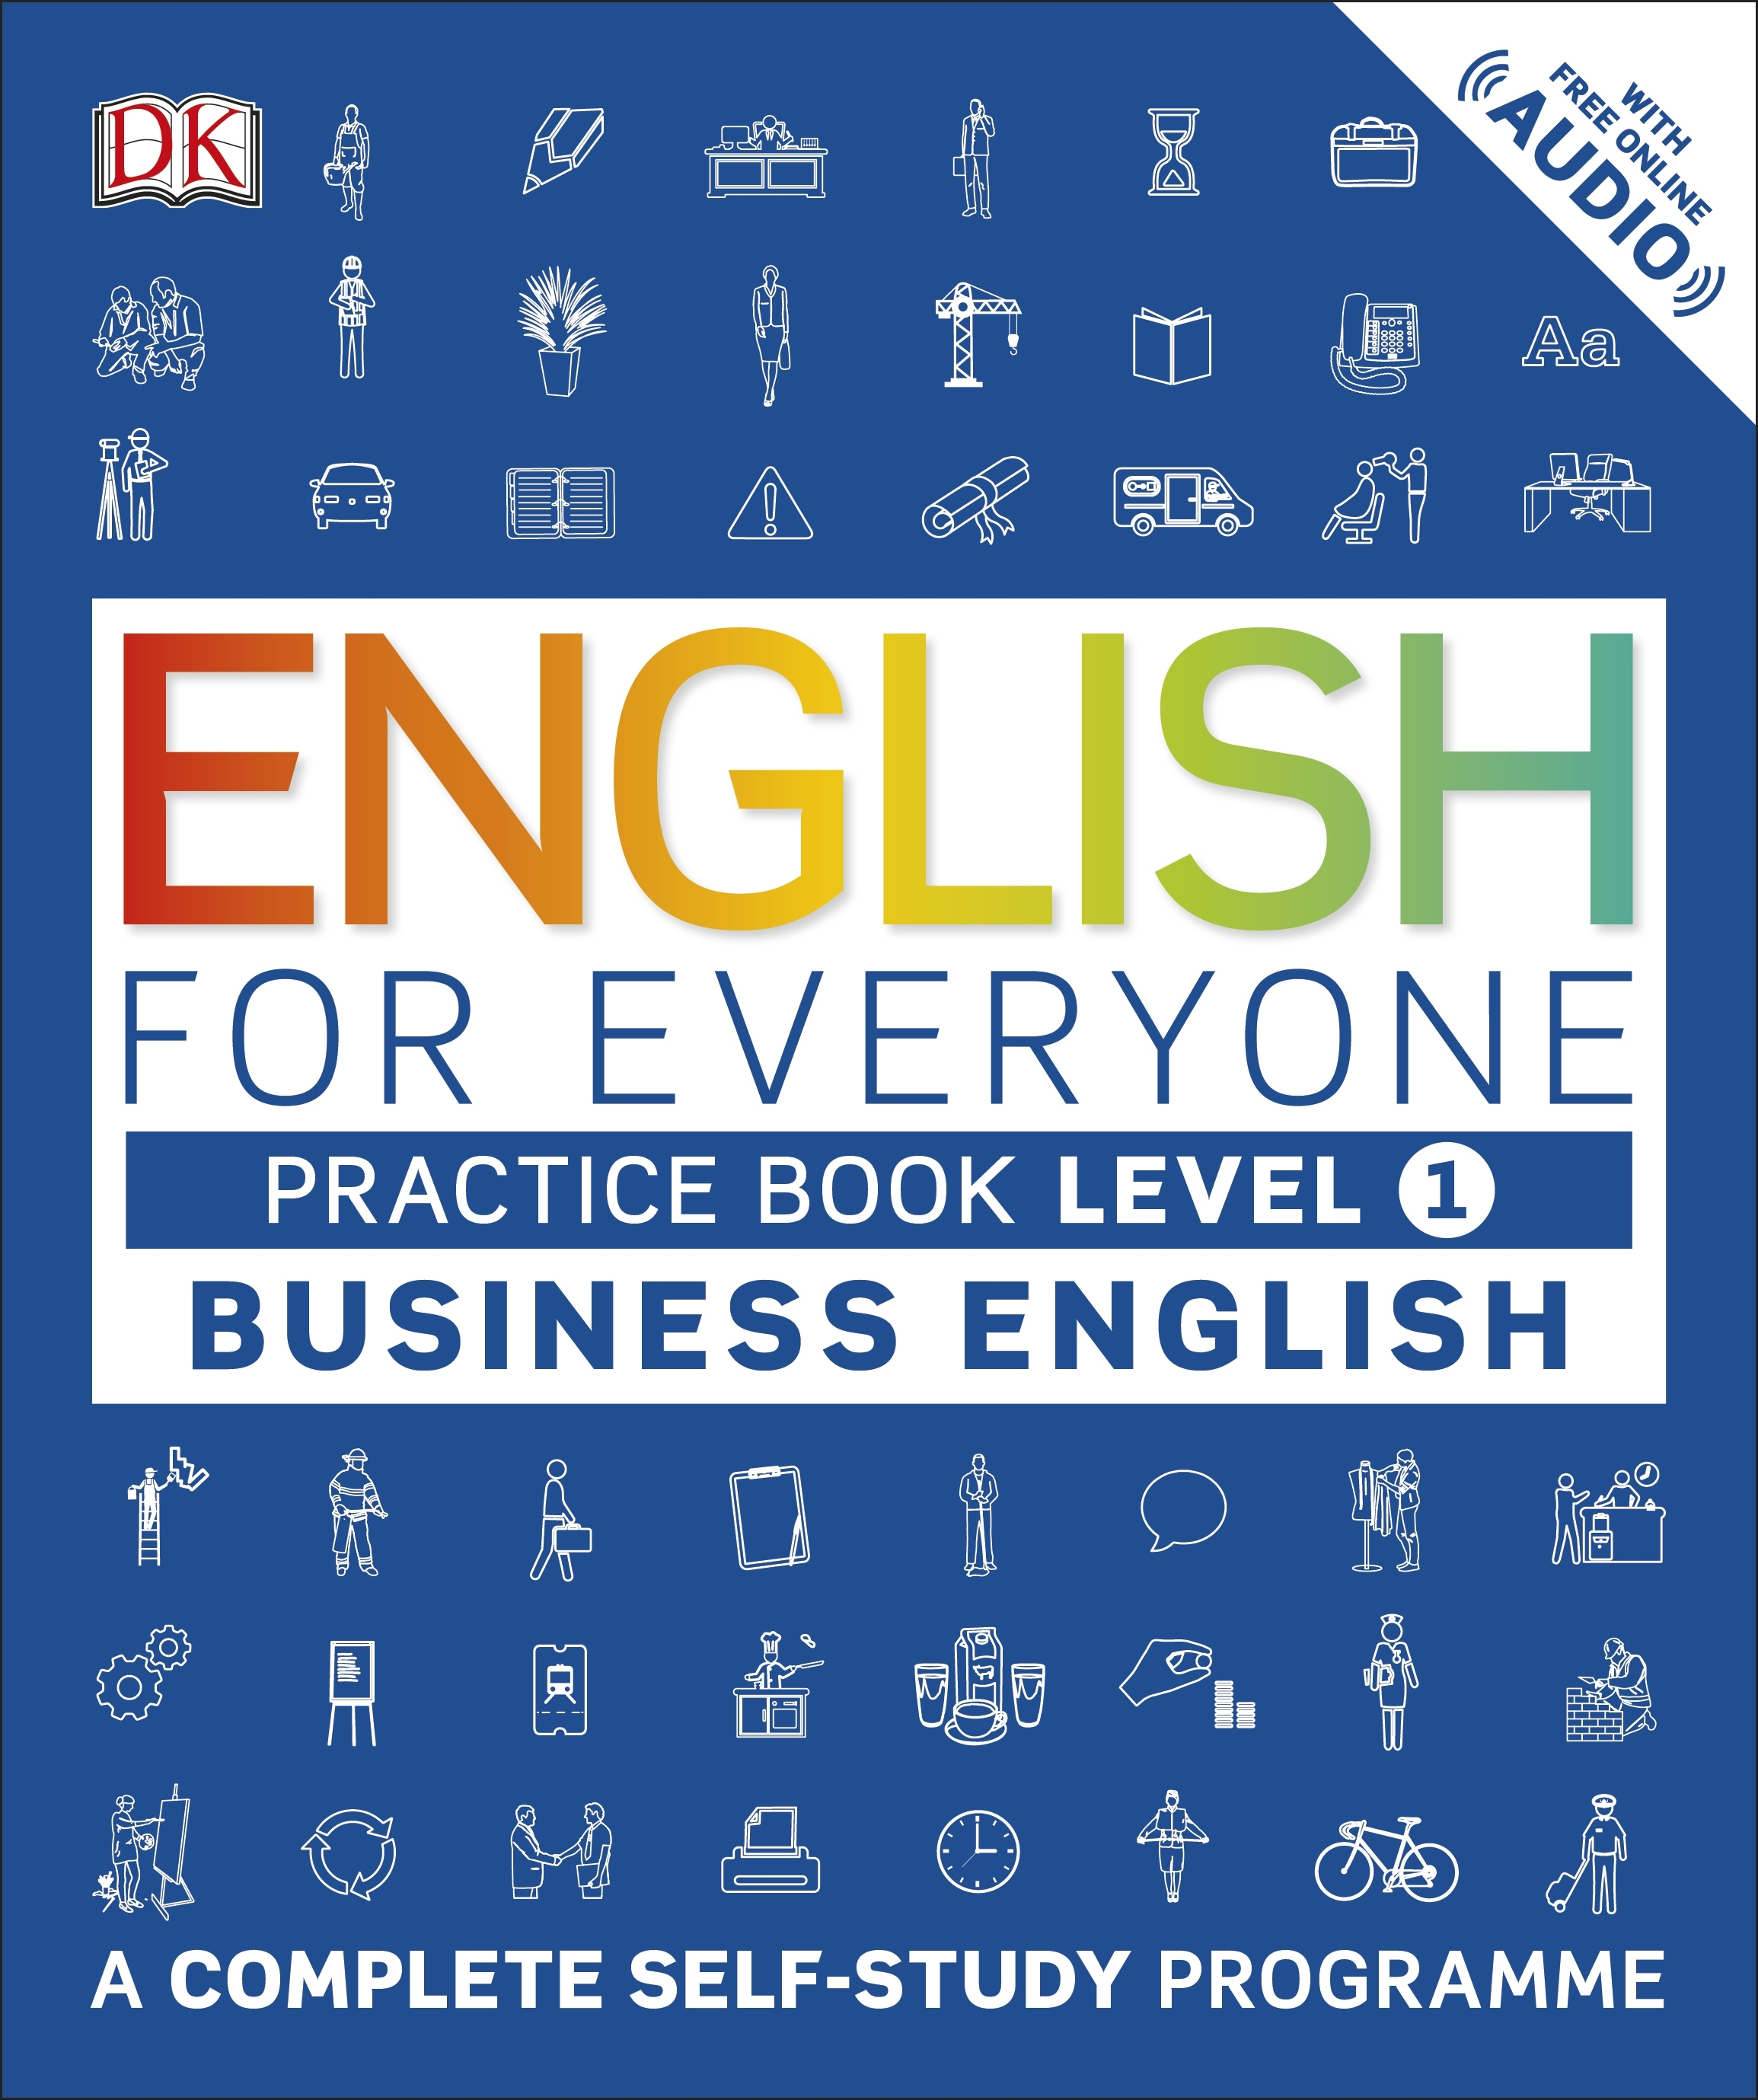 English for Everyone: Business Practice Book by DK - Penguin